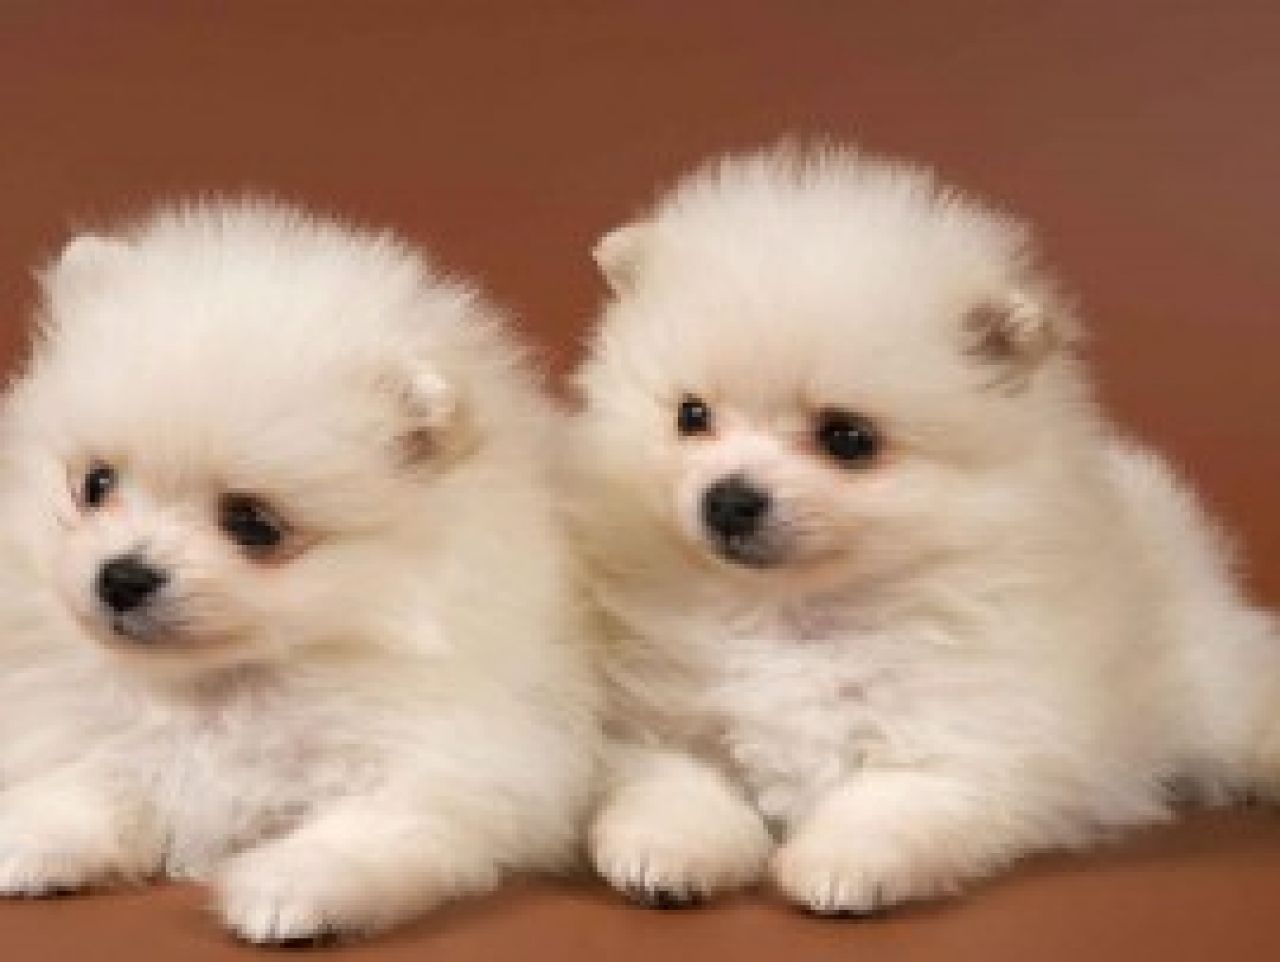 SOOO PUFFY Puppies and Dogs Pinterest